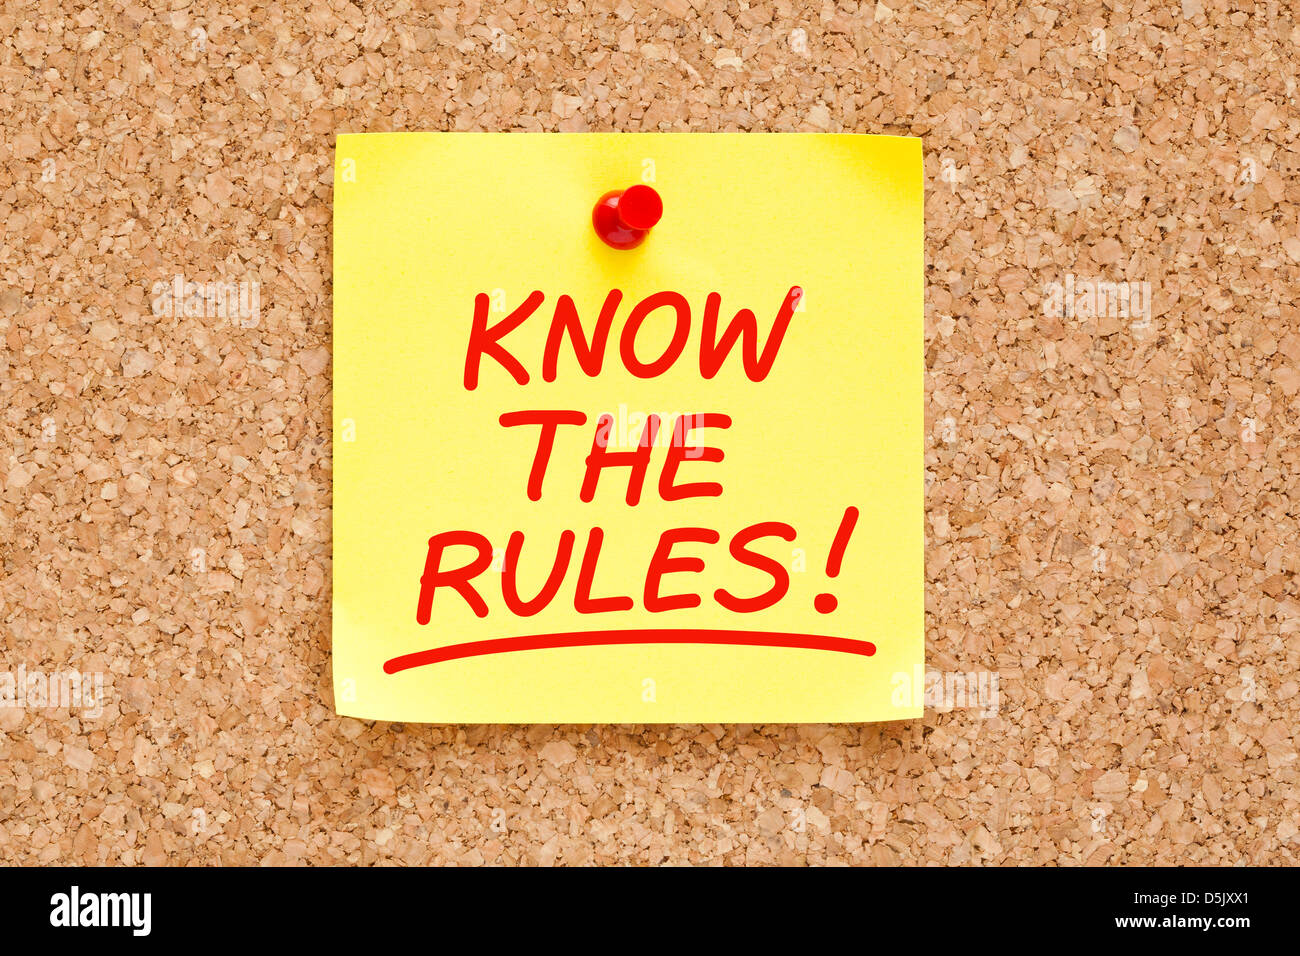 Know The Rules written on yellow sticky note with red marker. - Stock Image